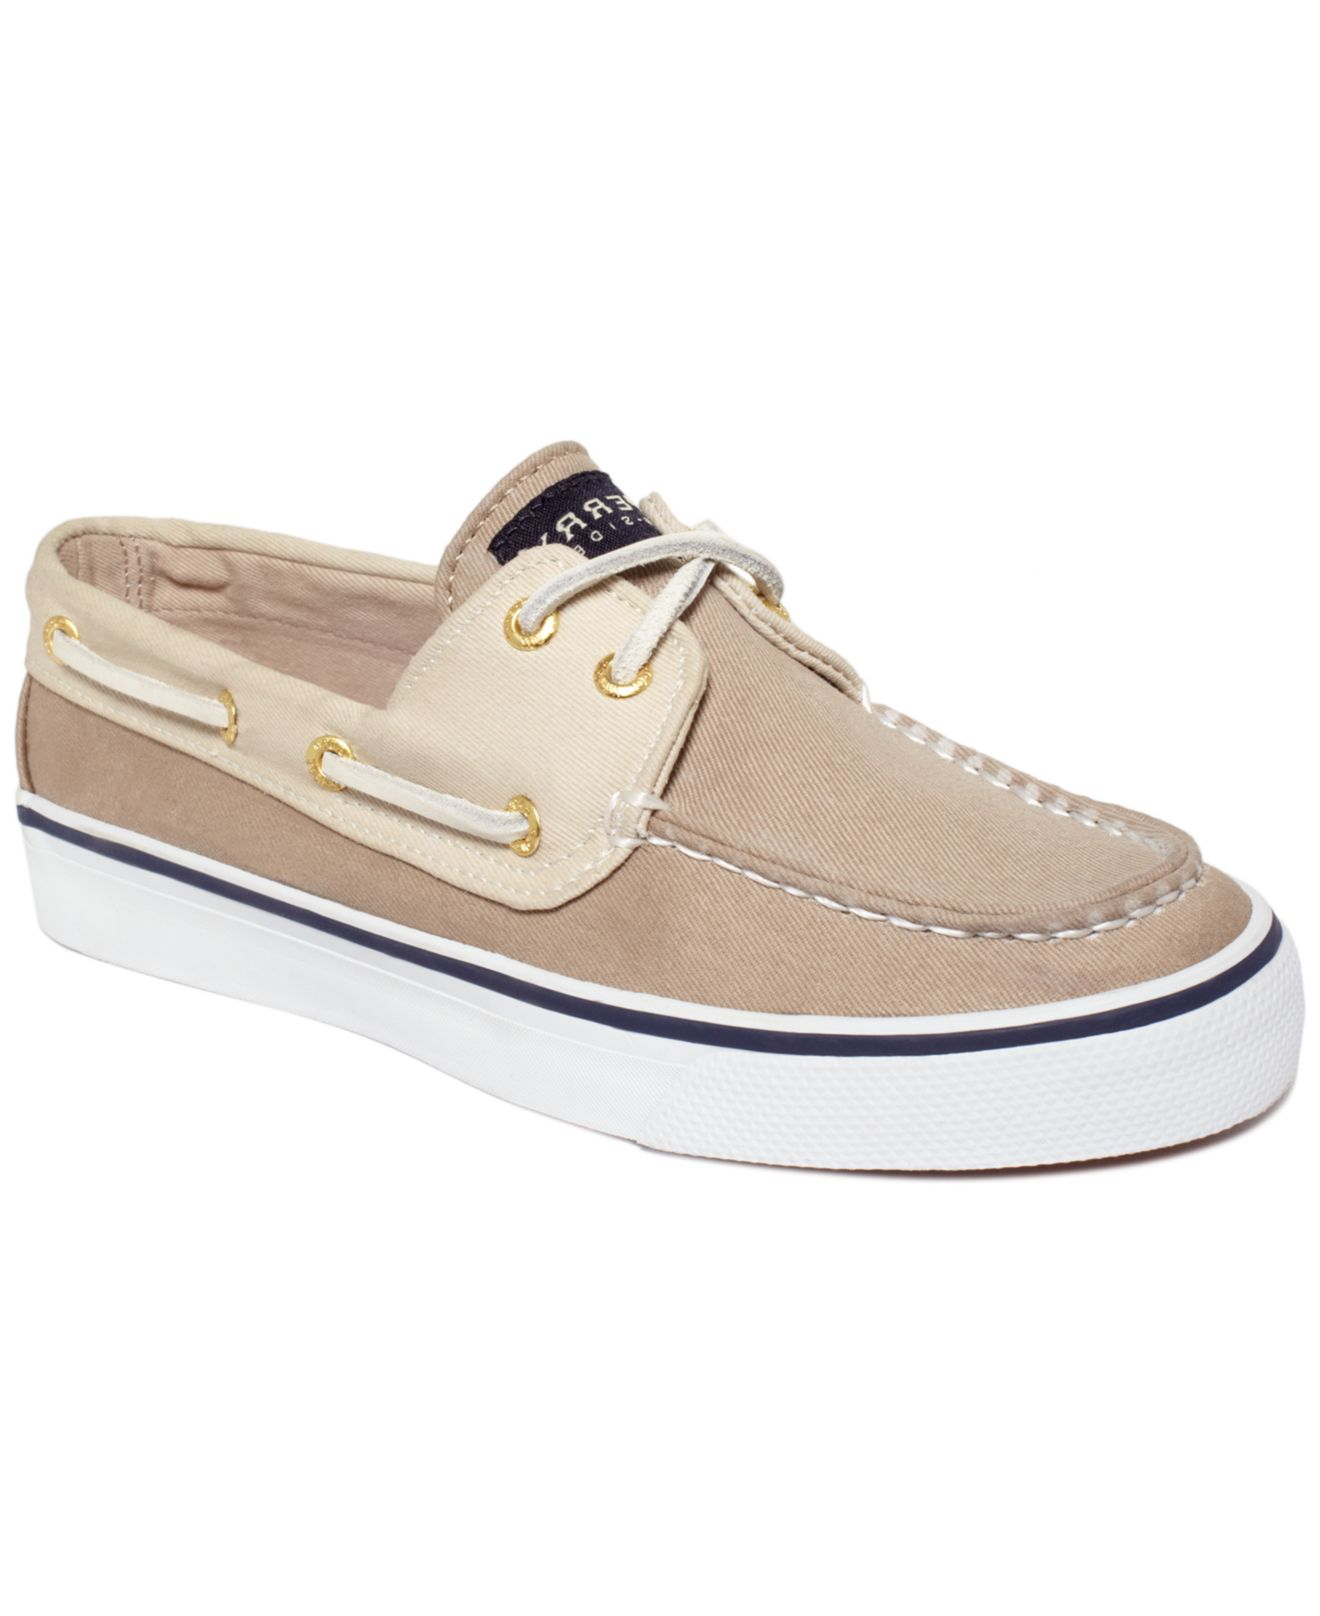 Lyst - Sperry Top-Sider Sperry Women S Bahama Boat Shoes in Brown 4d6c86c4b0